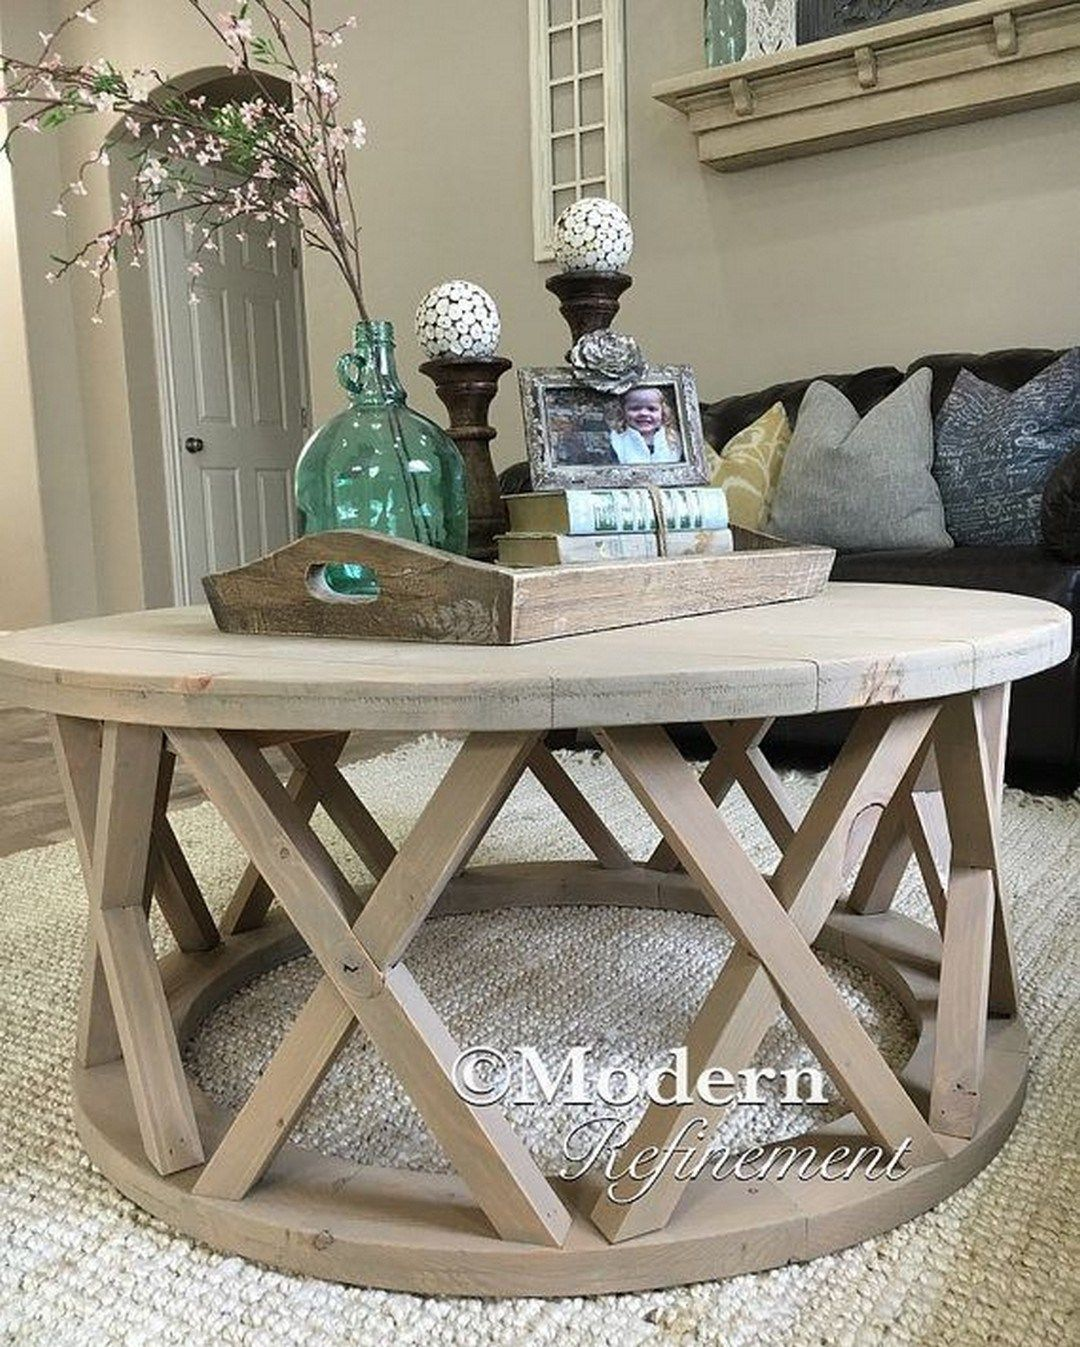 Rustic round coffee table farmhouse decorating style  ideas for living room and kitchen